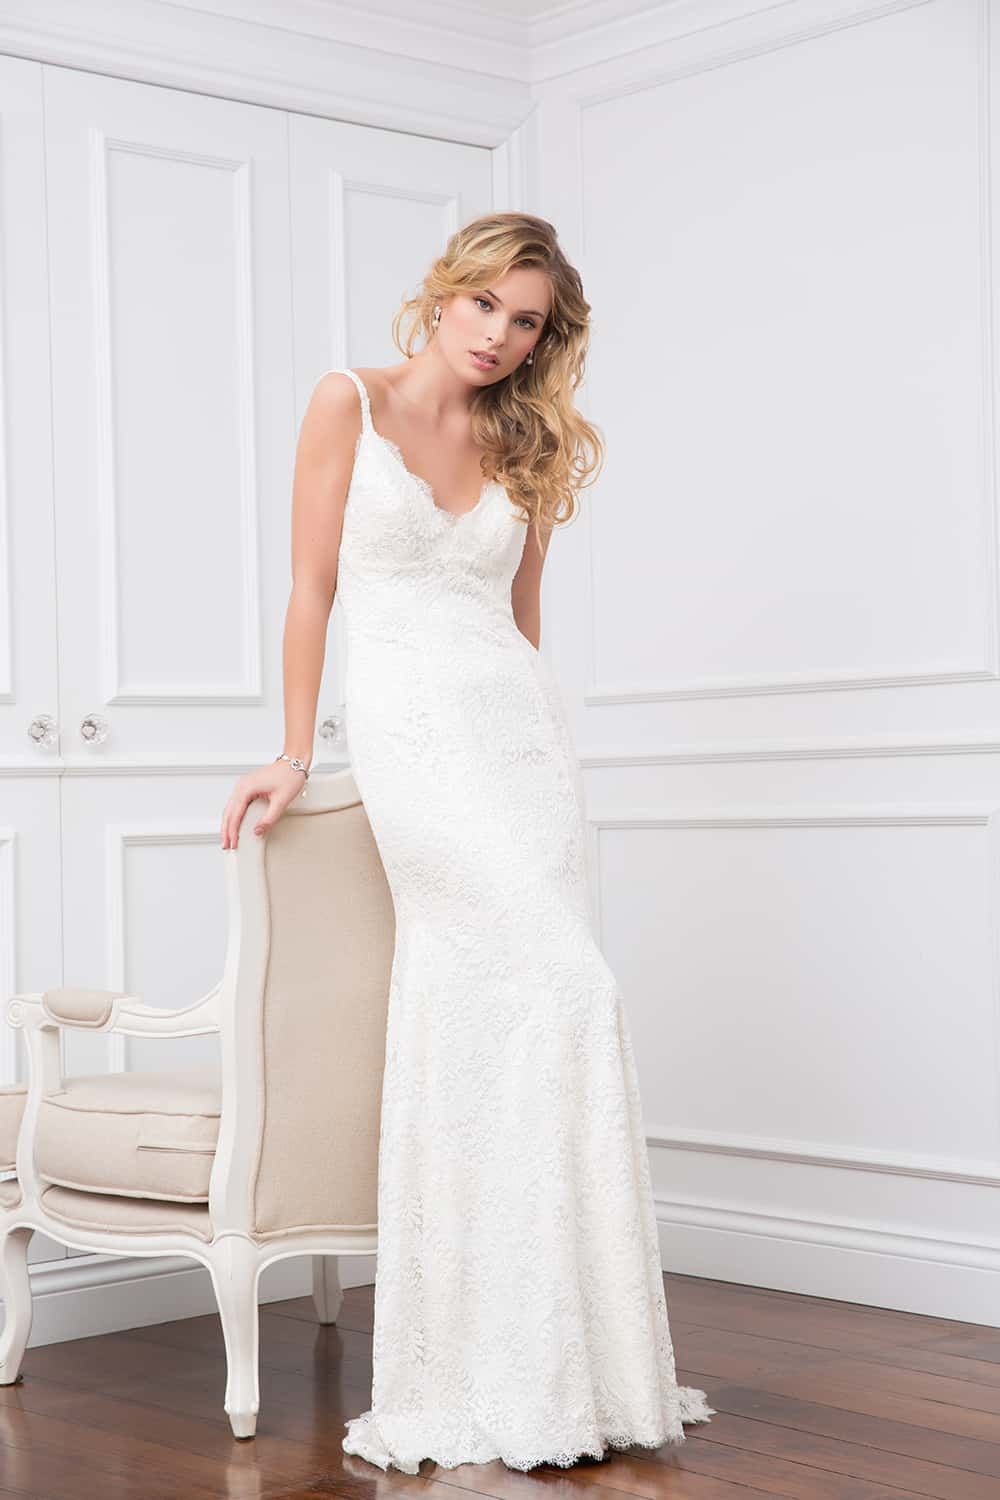 The Alice wedding gown with spaghetti strap and lace trim from Wendy Makin Couture.